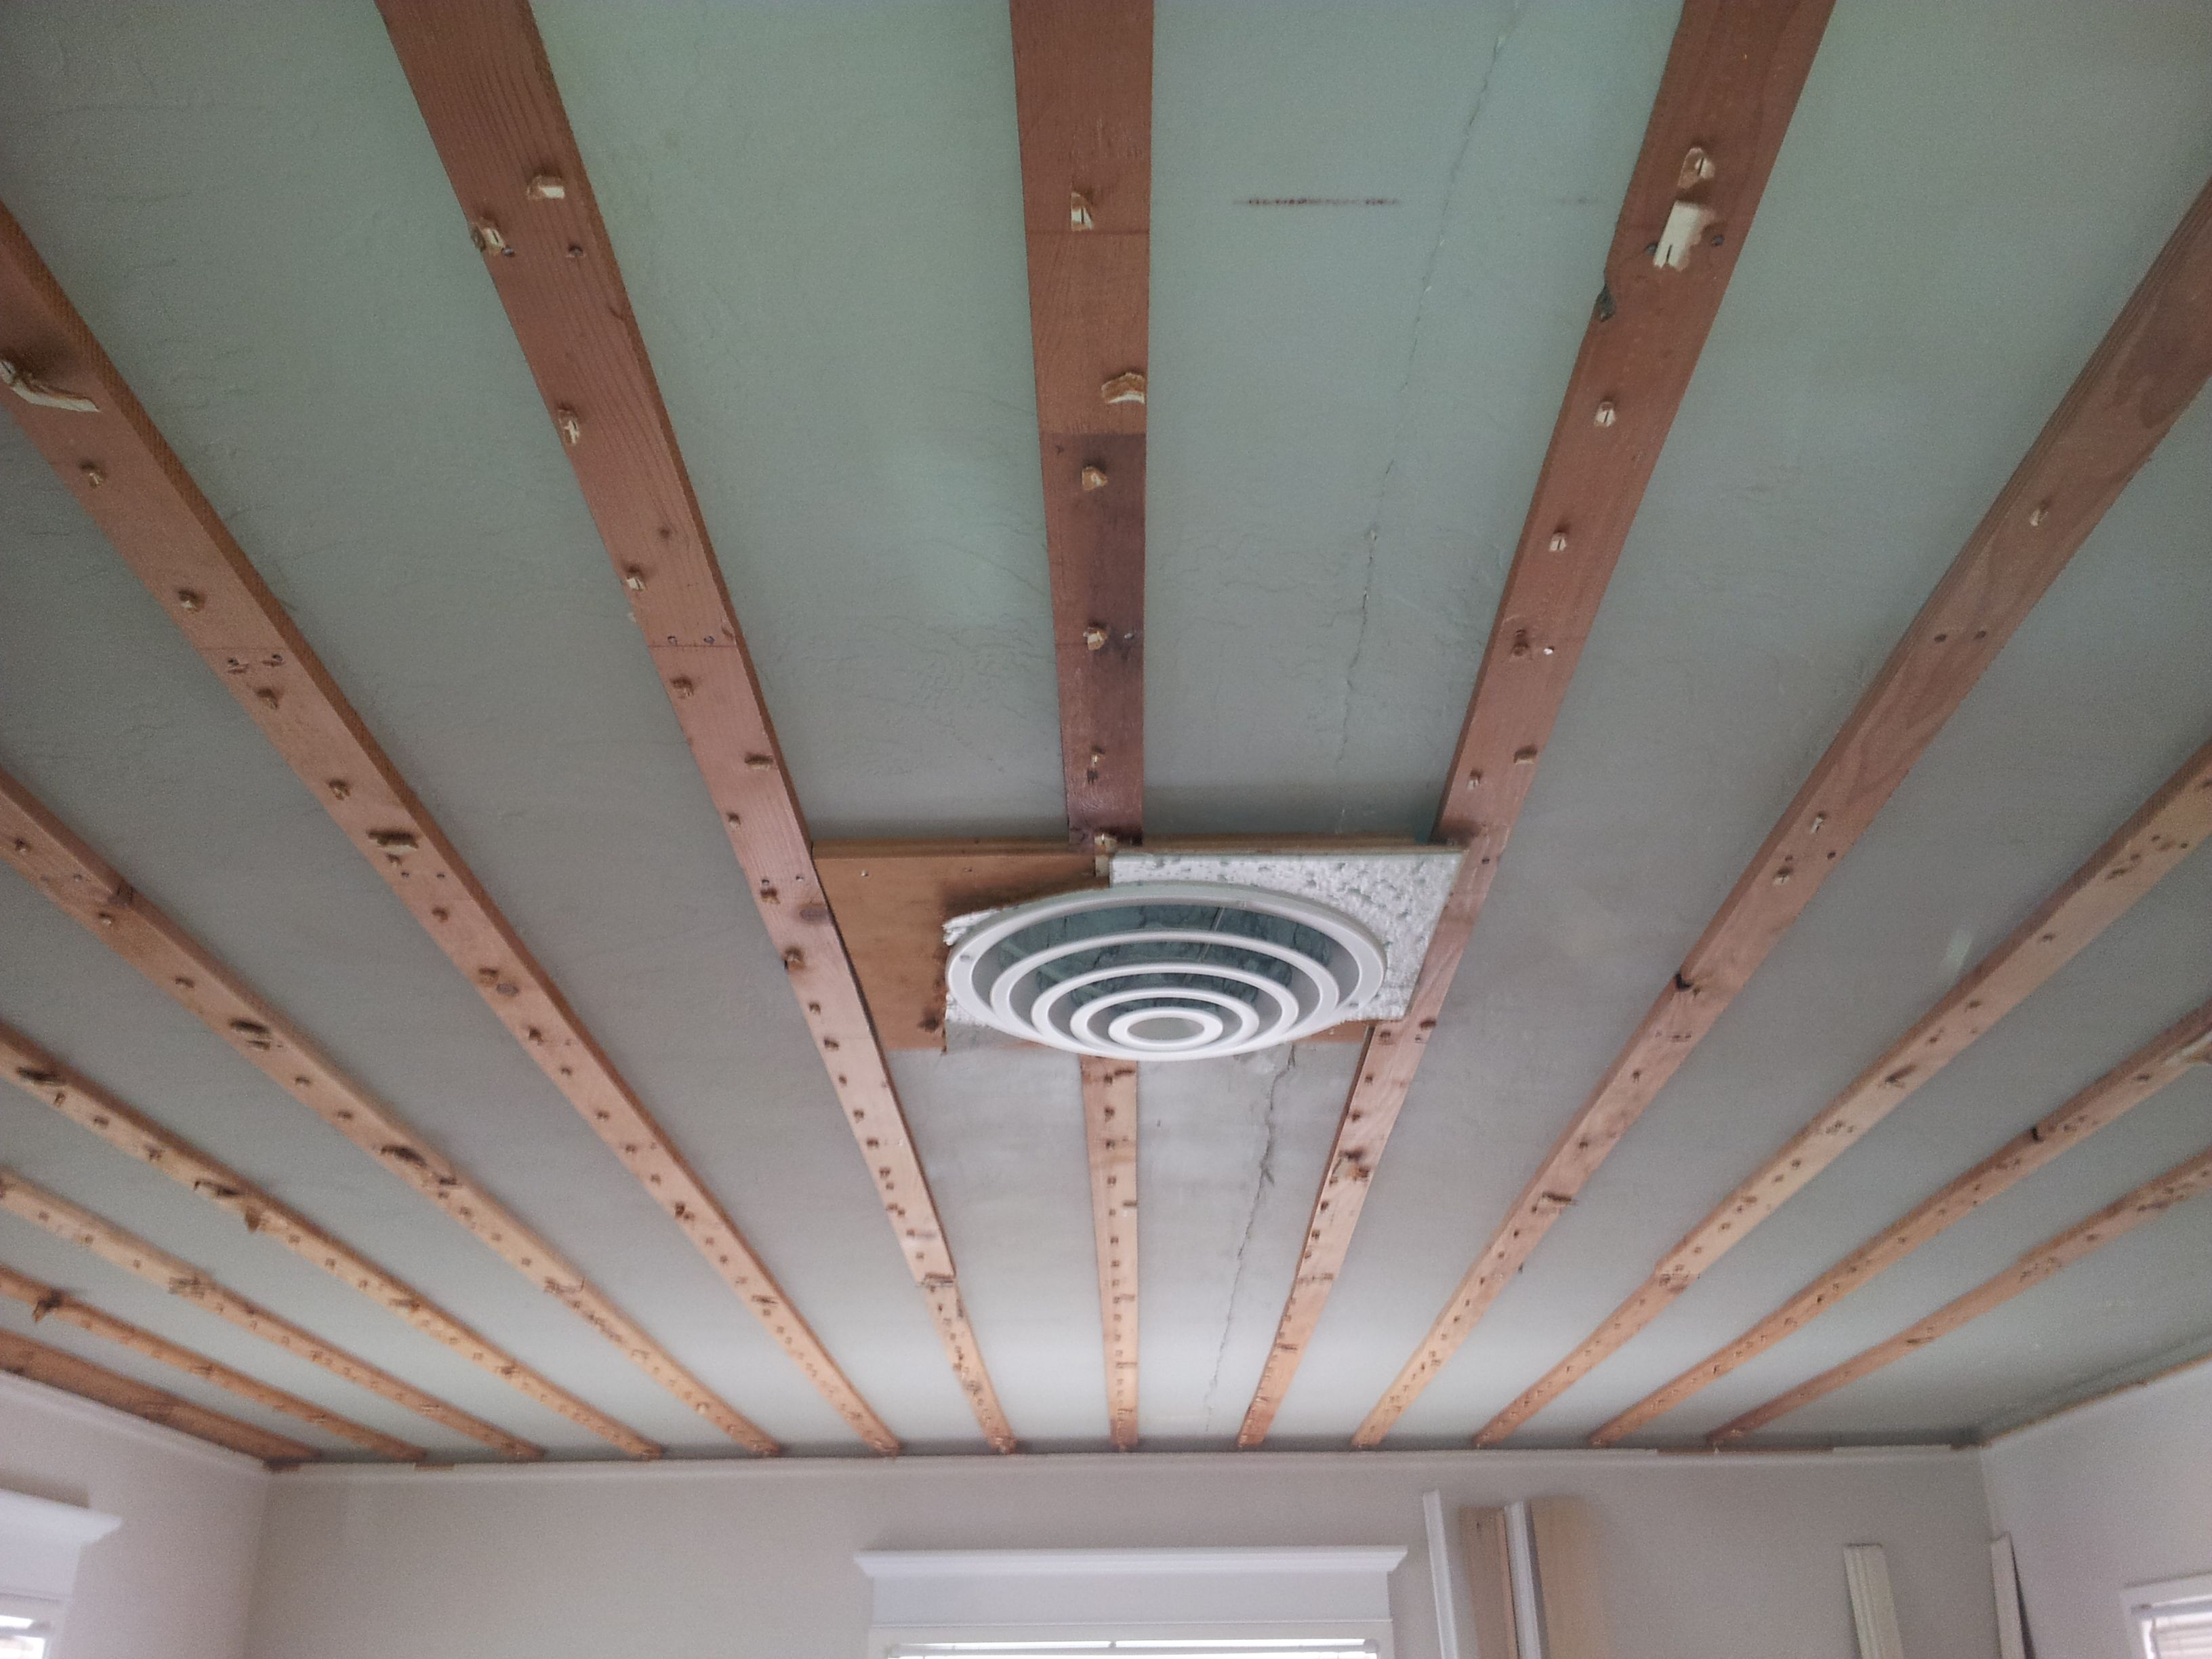 Acoustic Ceiling Removed Exposing The Furring Strips Living Room Remodel Ceiling Lights Ceiling